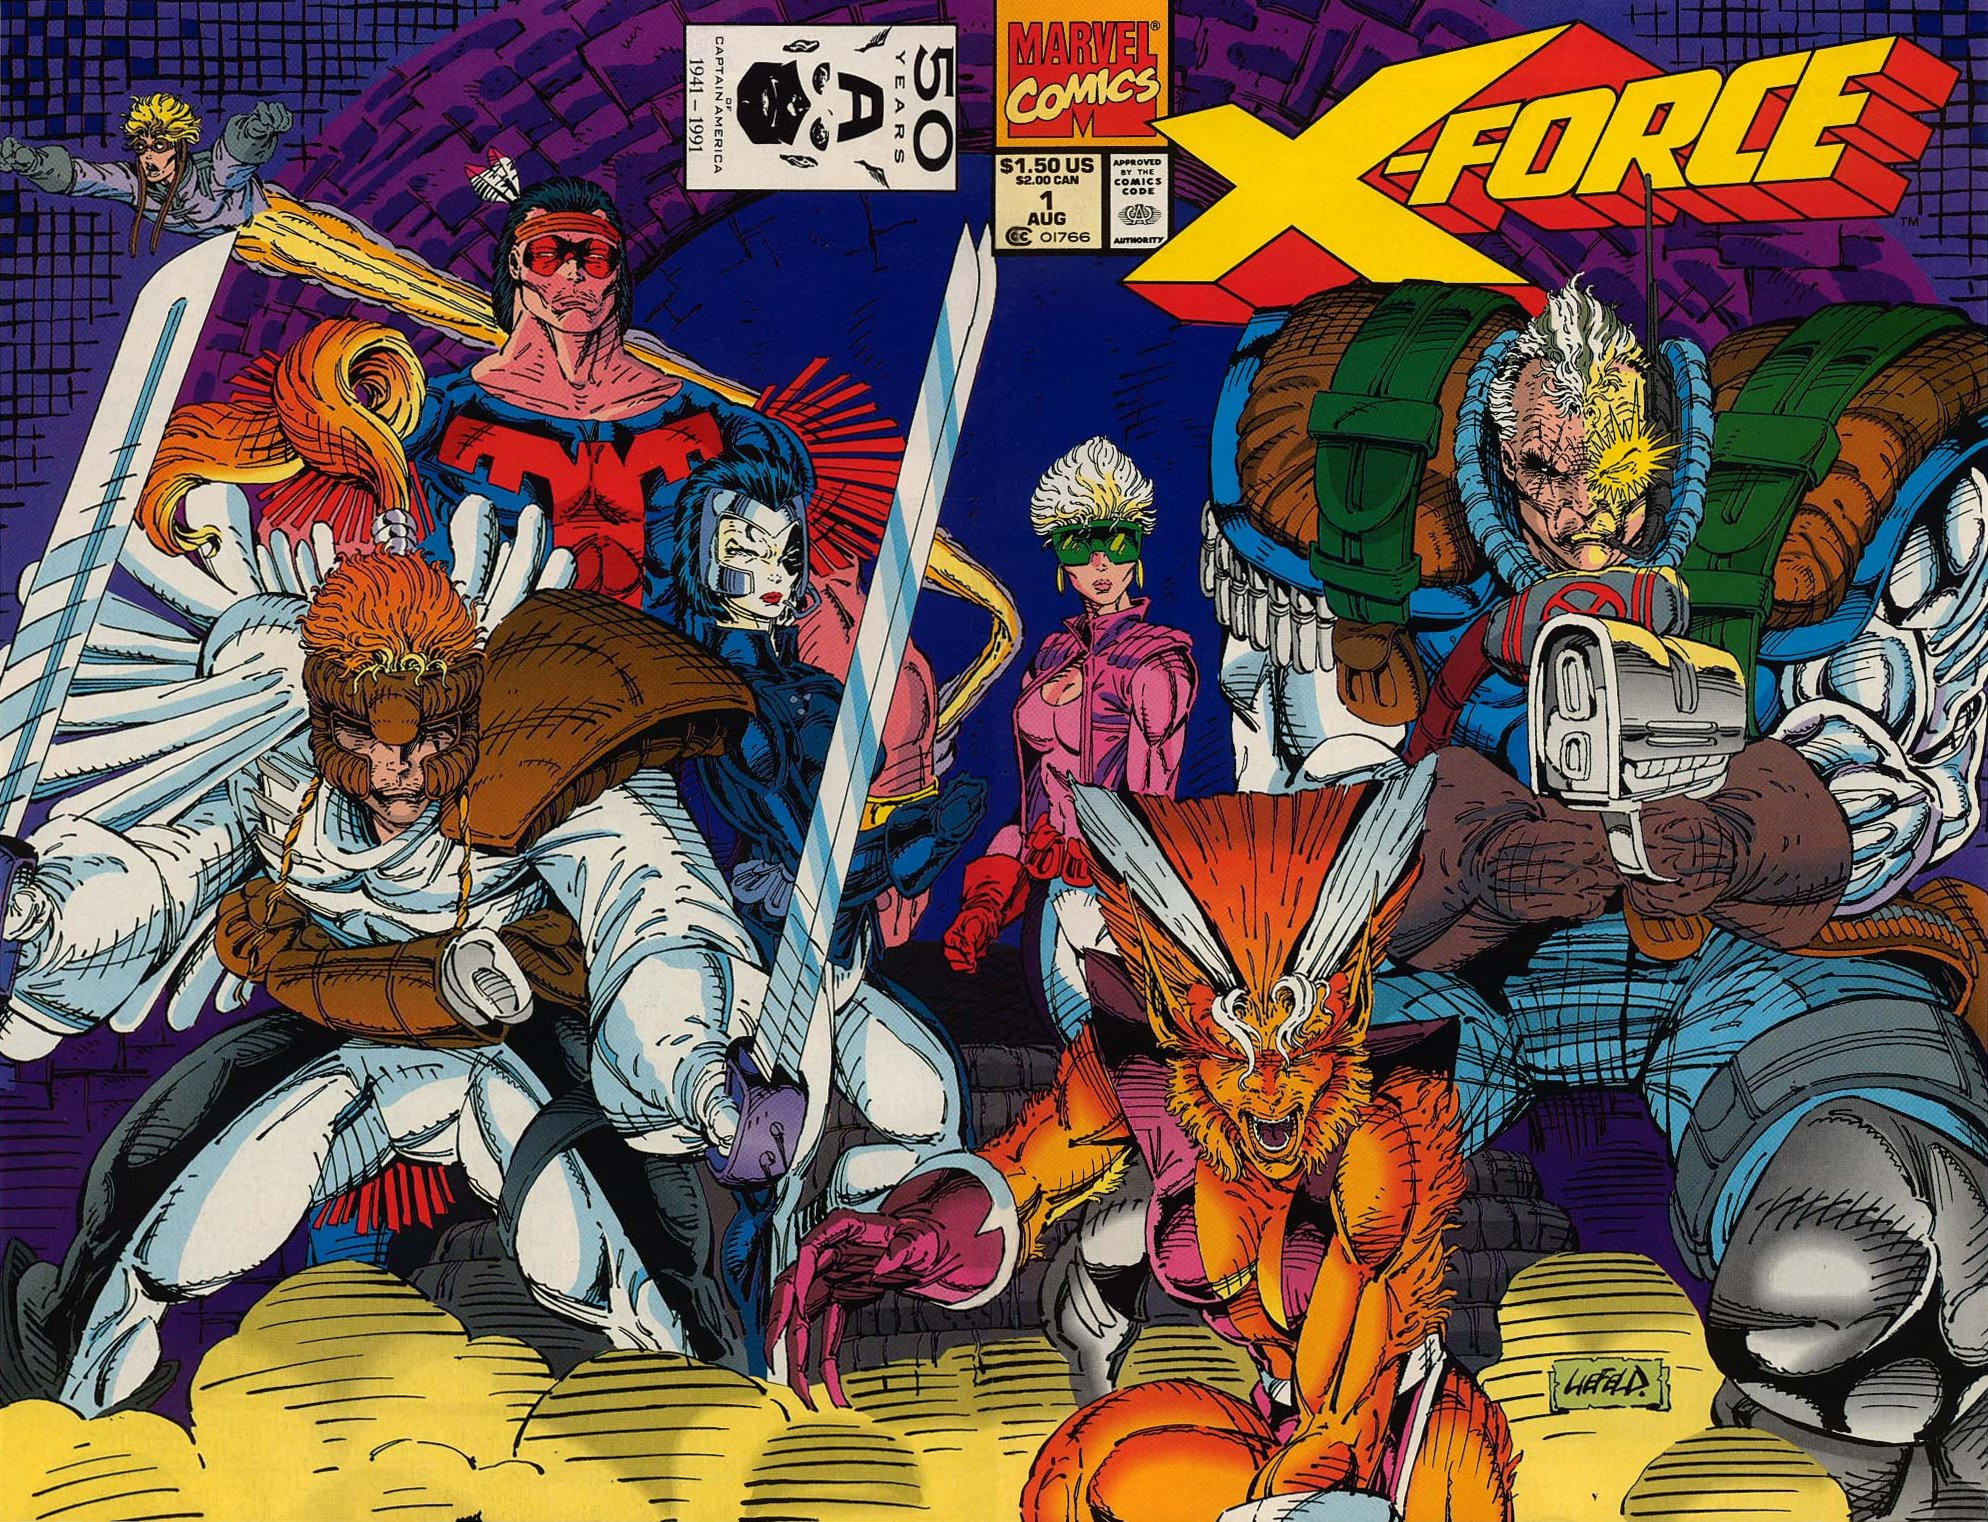 X-Force #1 cover